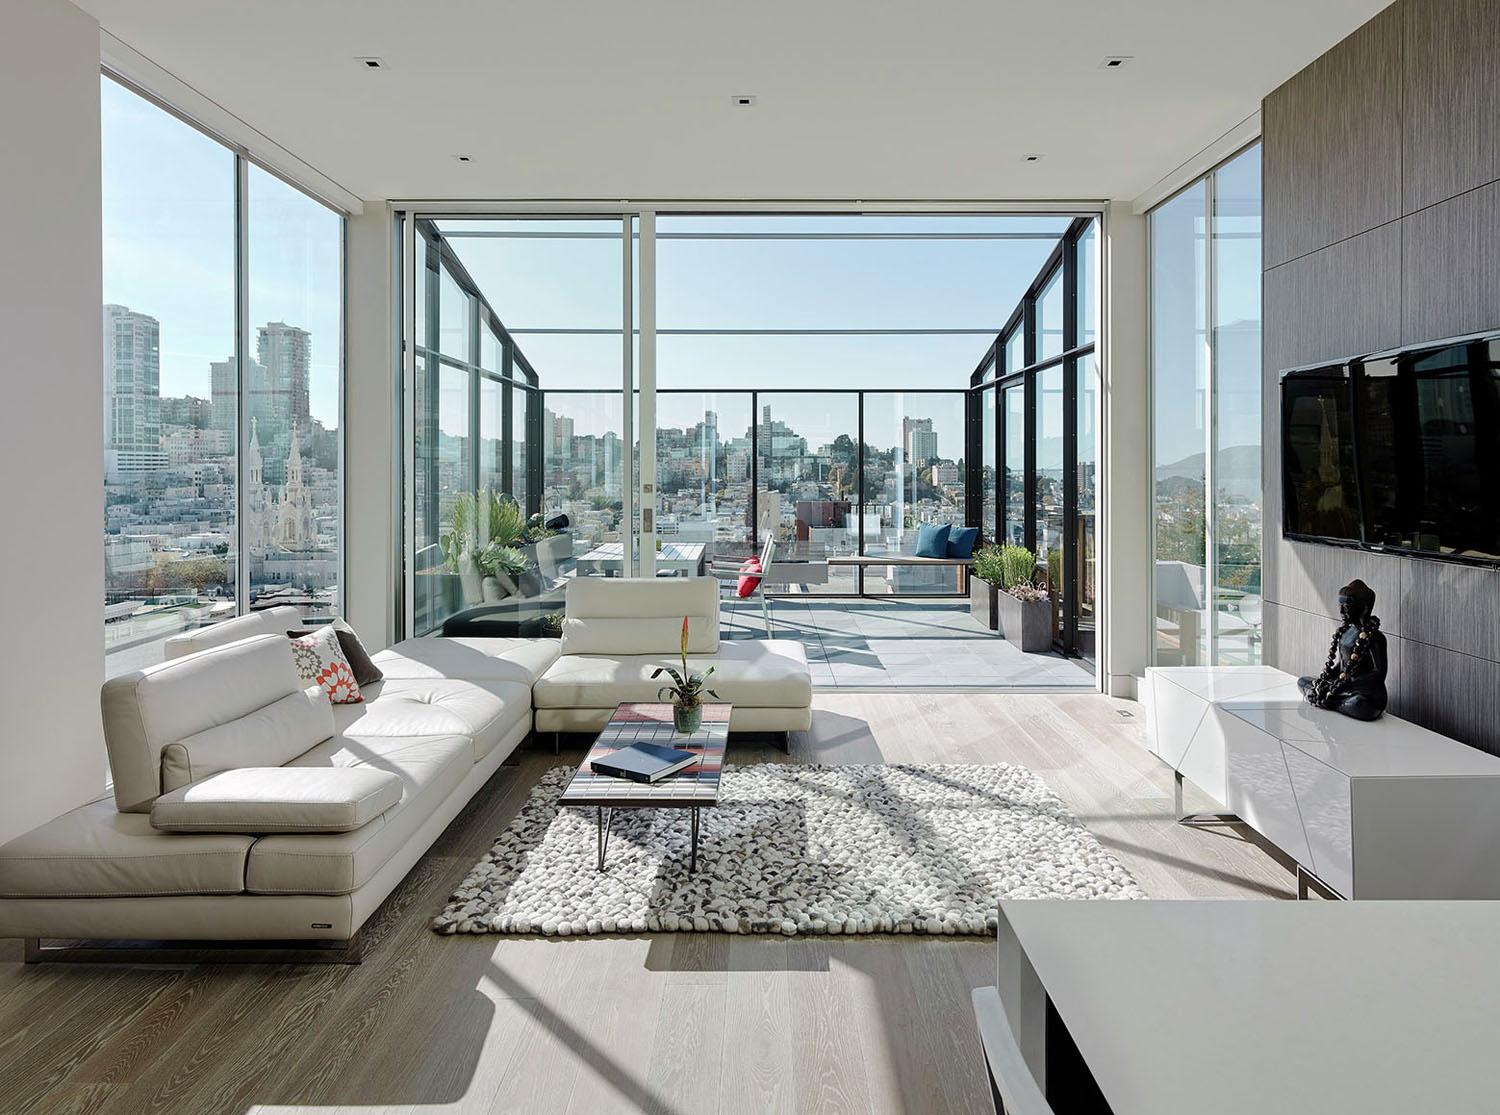 Modern San Francisco Home with Views of the City